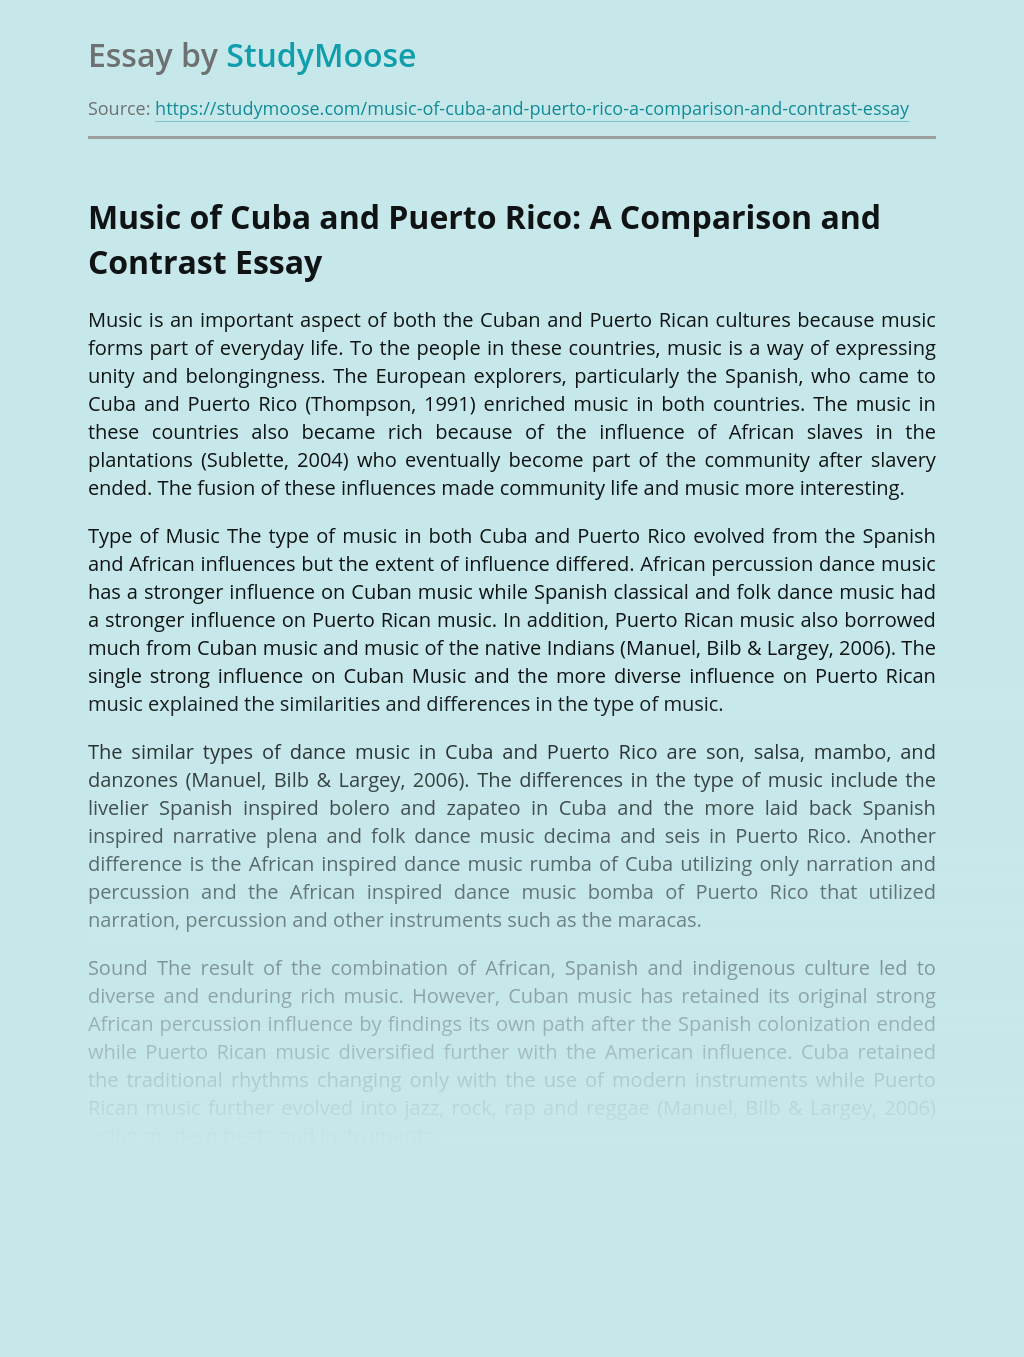 Music of Cuba and Puerto Rico: A Comparison and Contrast